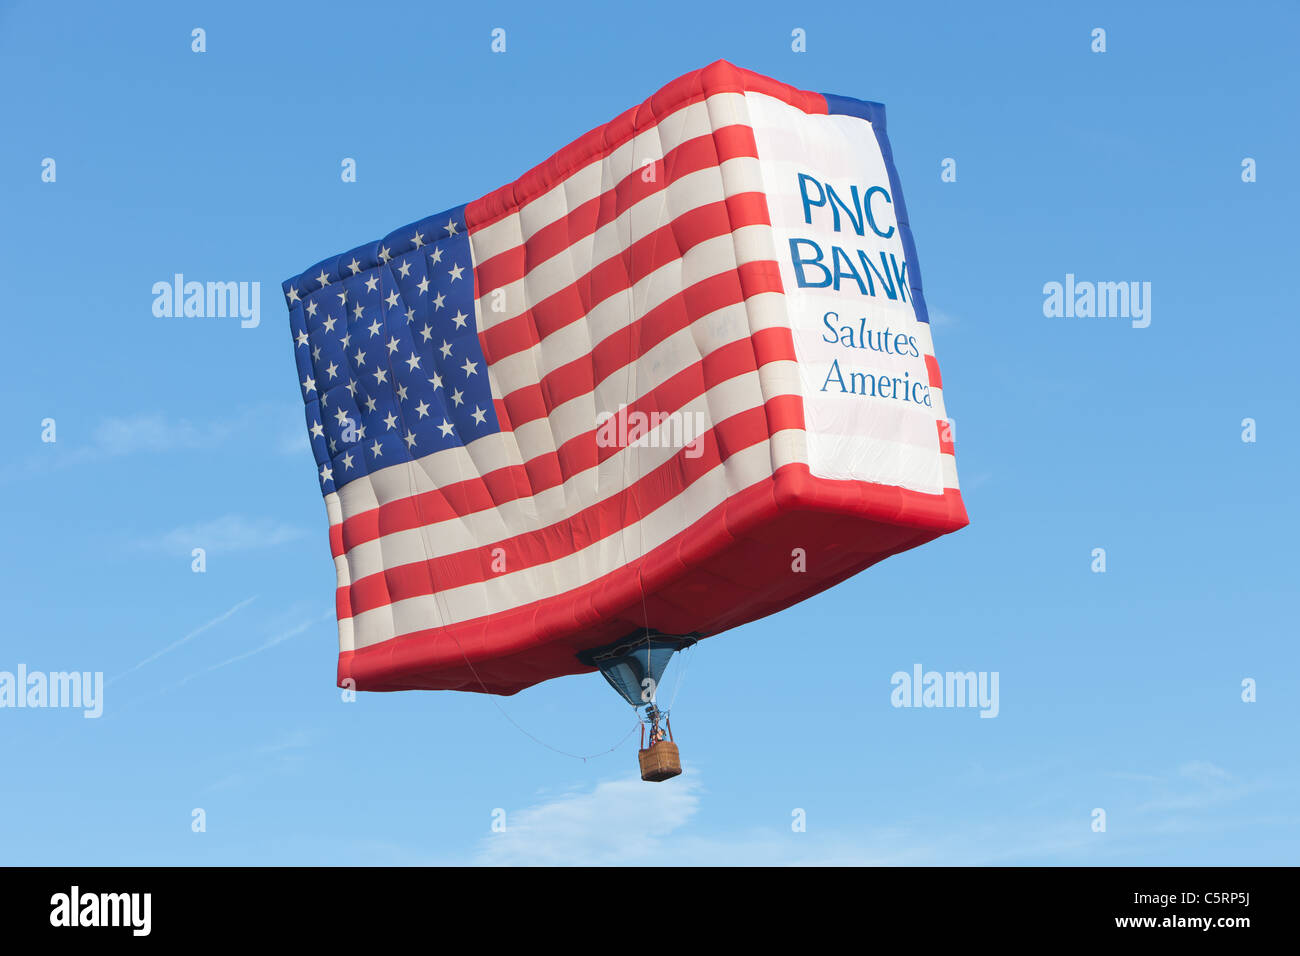 The PNC Bank hot air balloon rises during a morning balloon